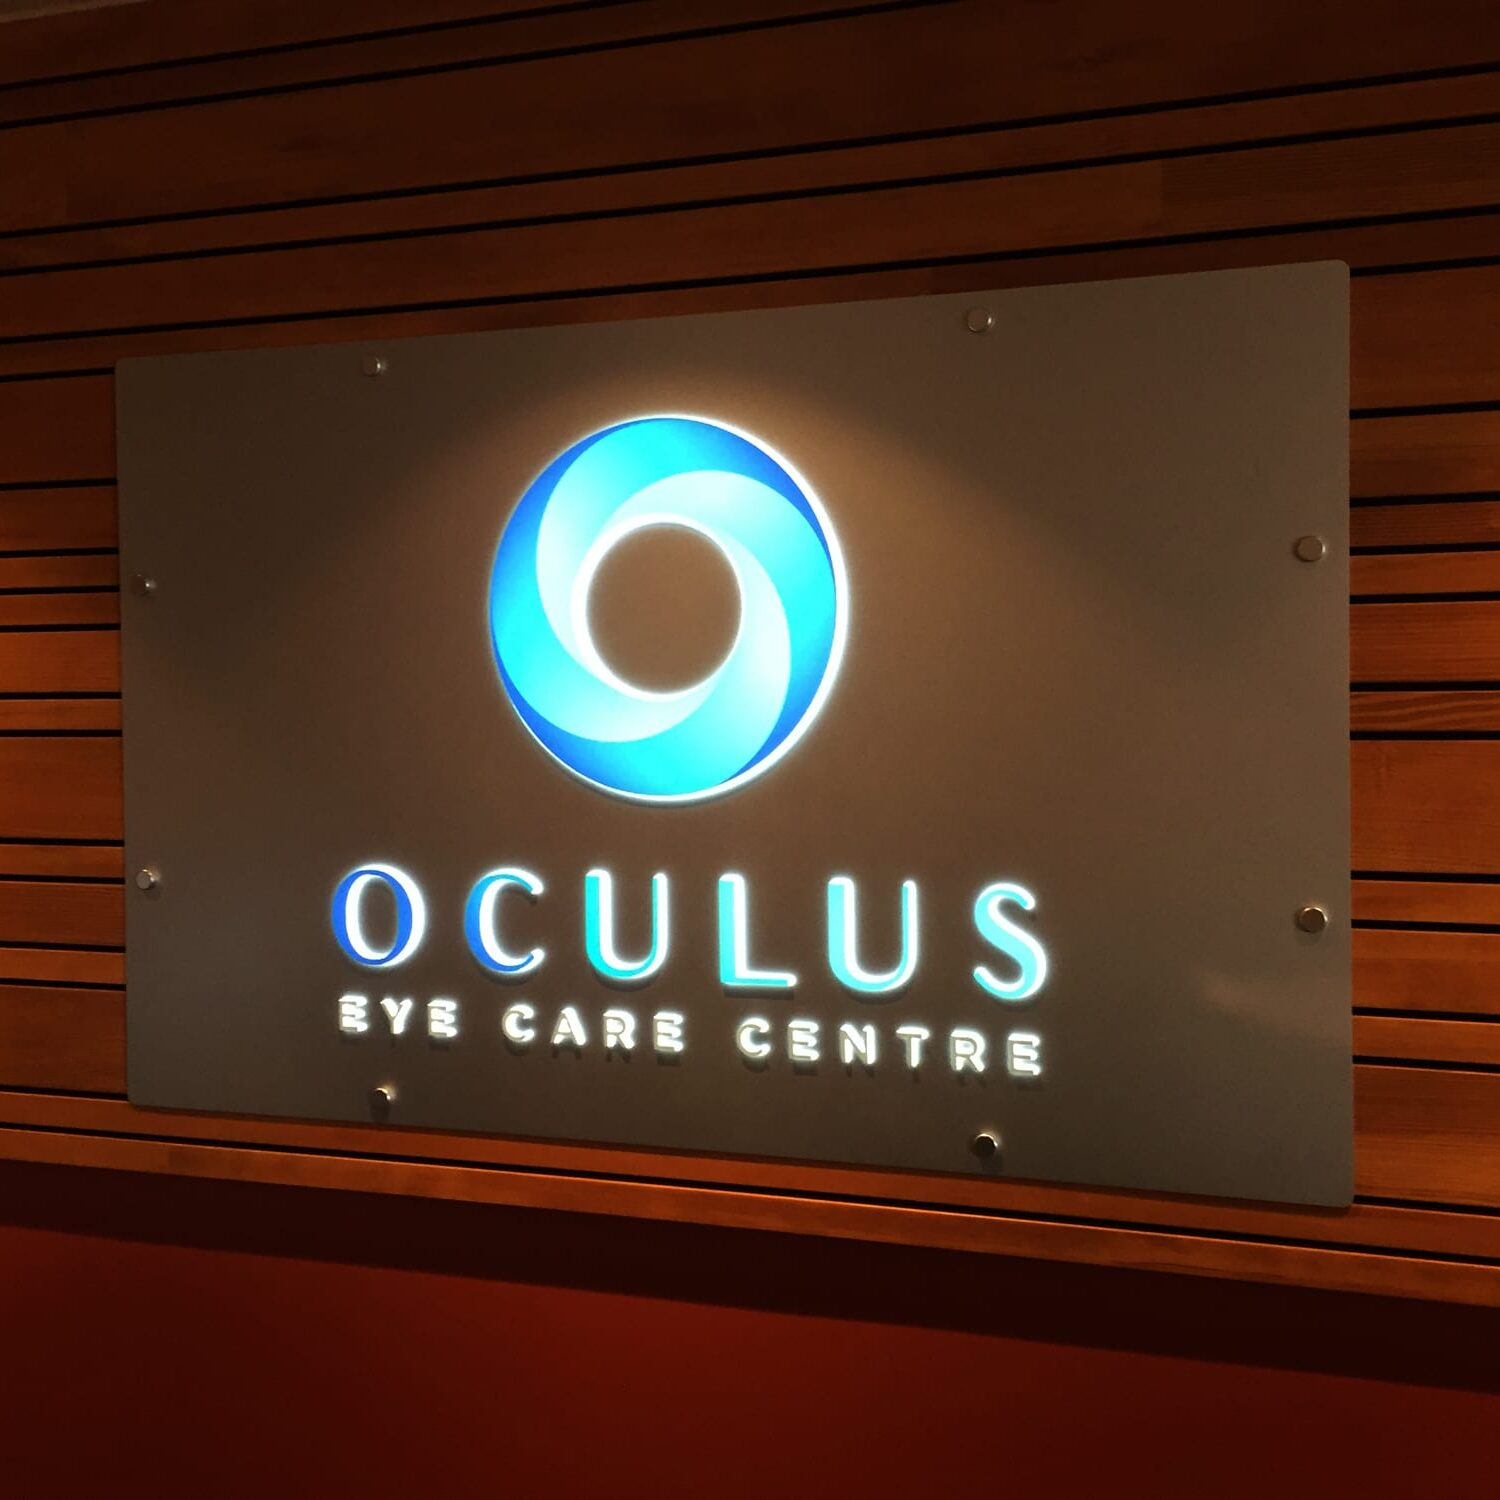 Oculus eye care reception sign